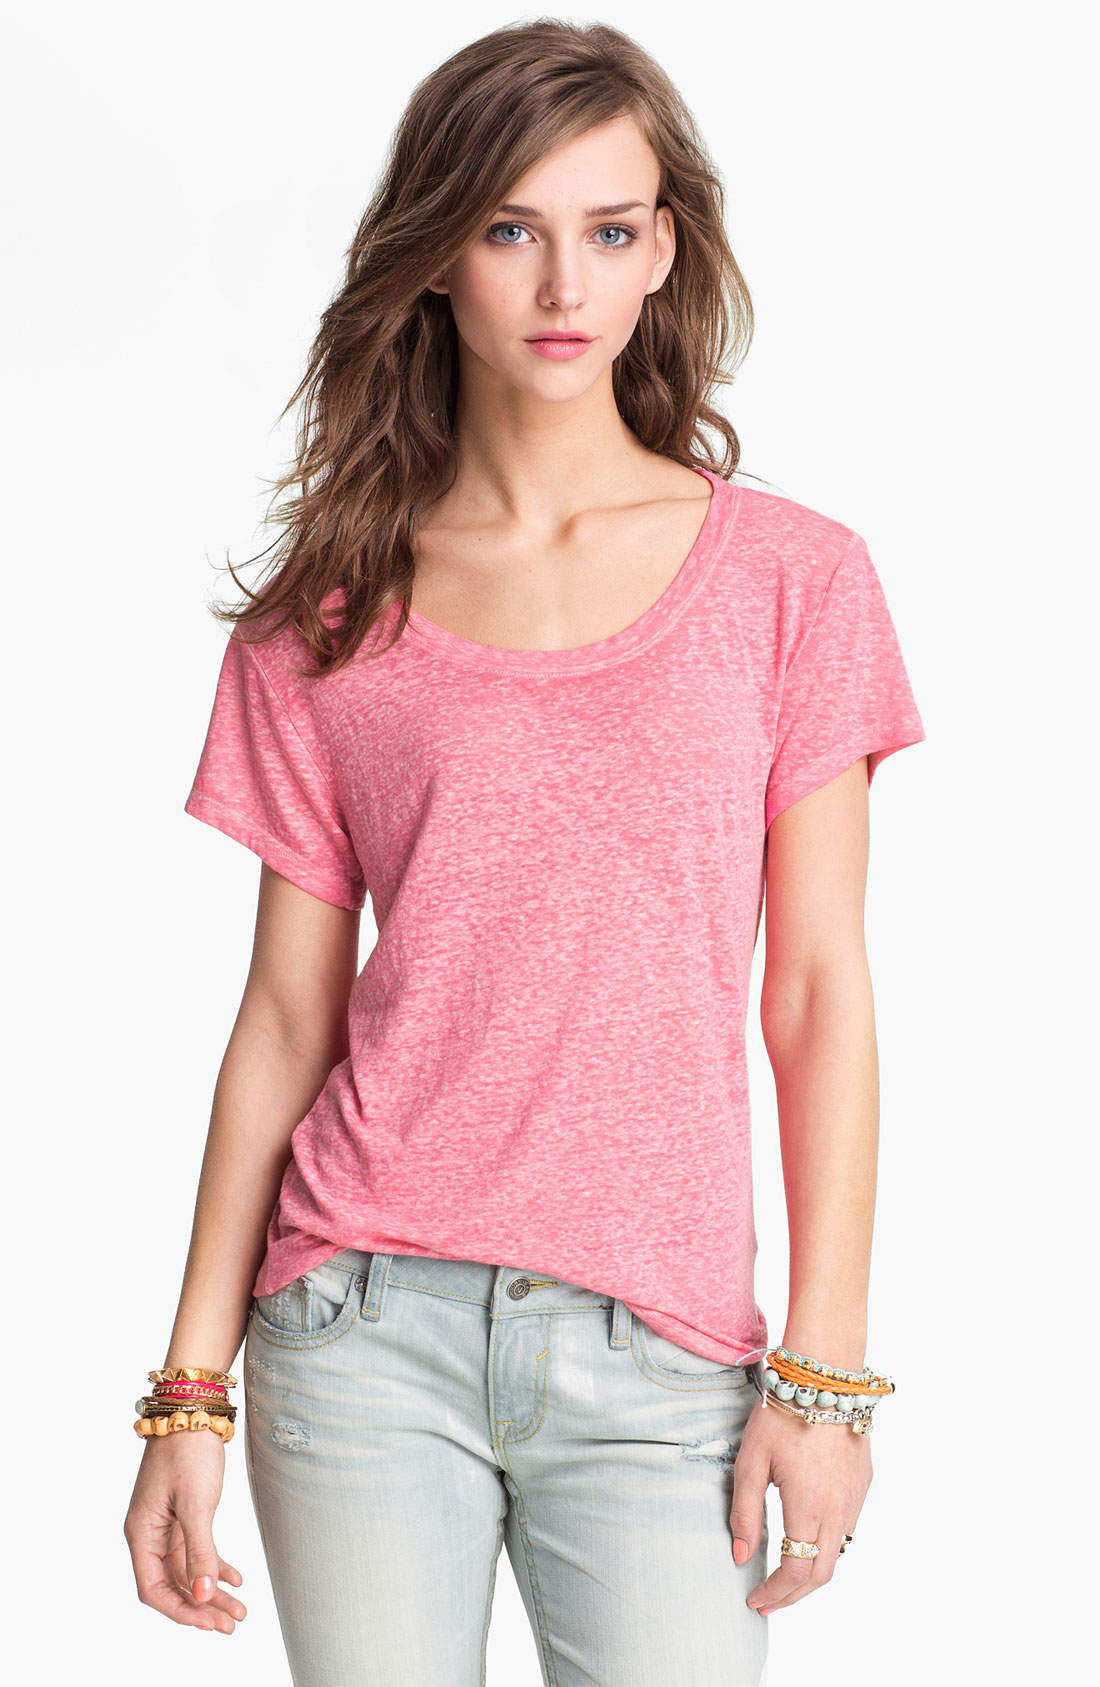 Cheap clothing stores Junior clothing stores list